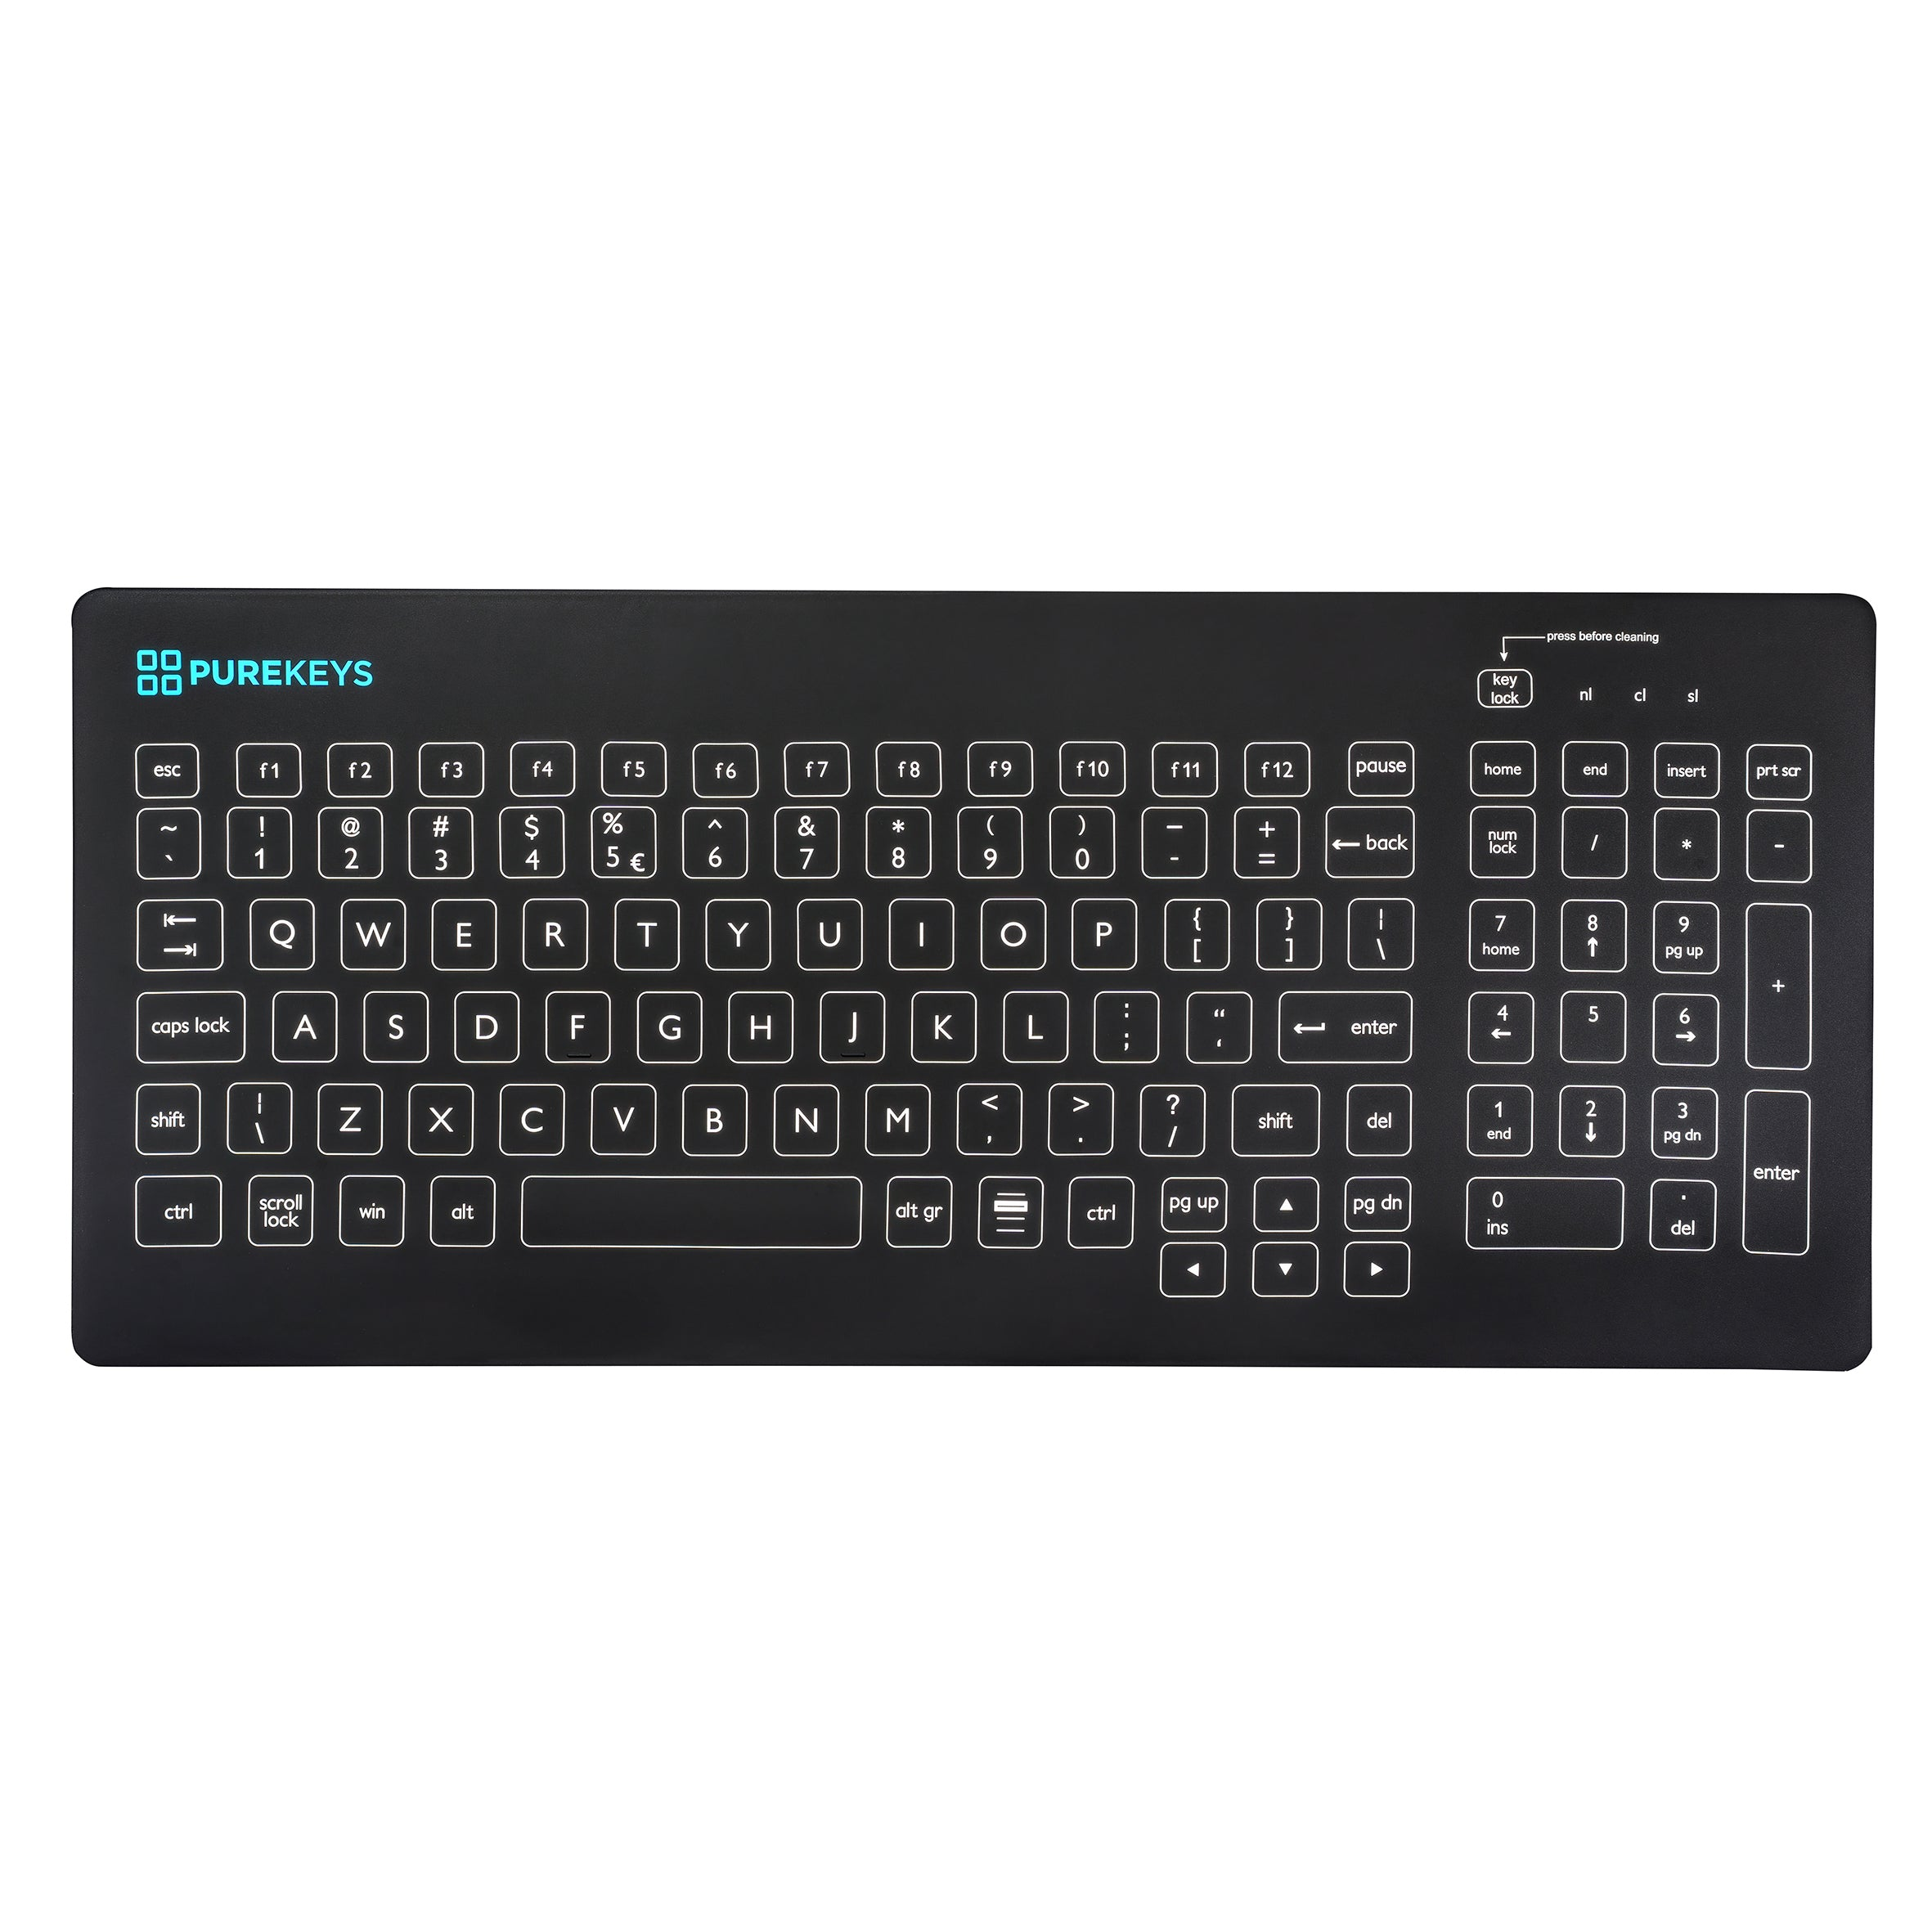 Purekeys Compact Keyboard in Black - Wired, IP66 with Tactile Feedback